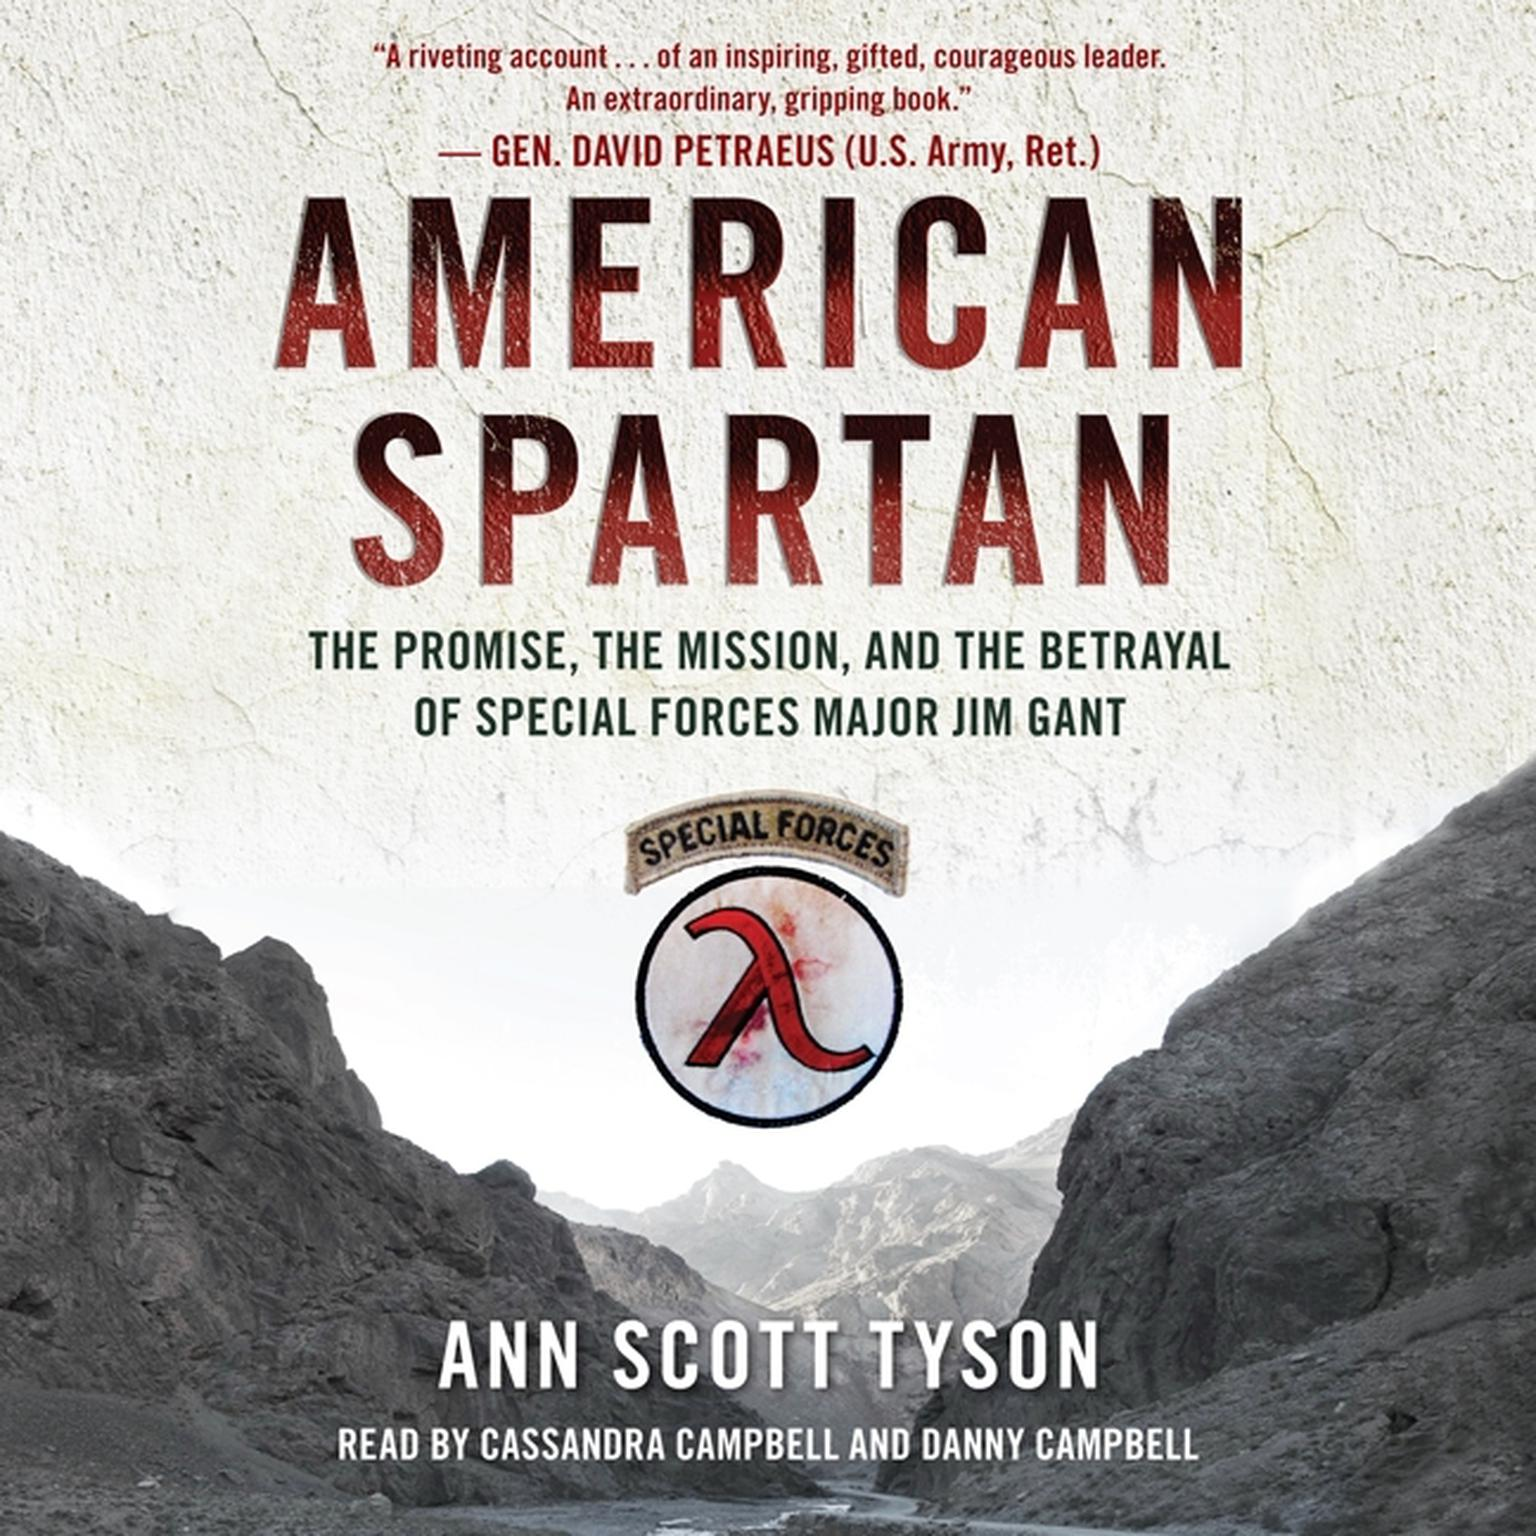 Printable American Spartan: The Promise, the Mission, and the Betrayal of Special Forces Major Jim Gant Audiobook Cover Art